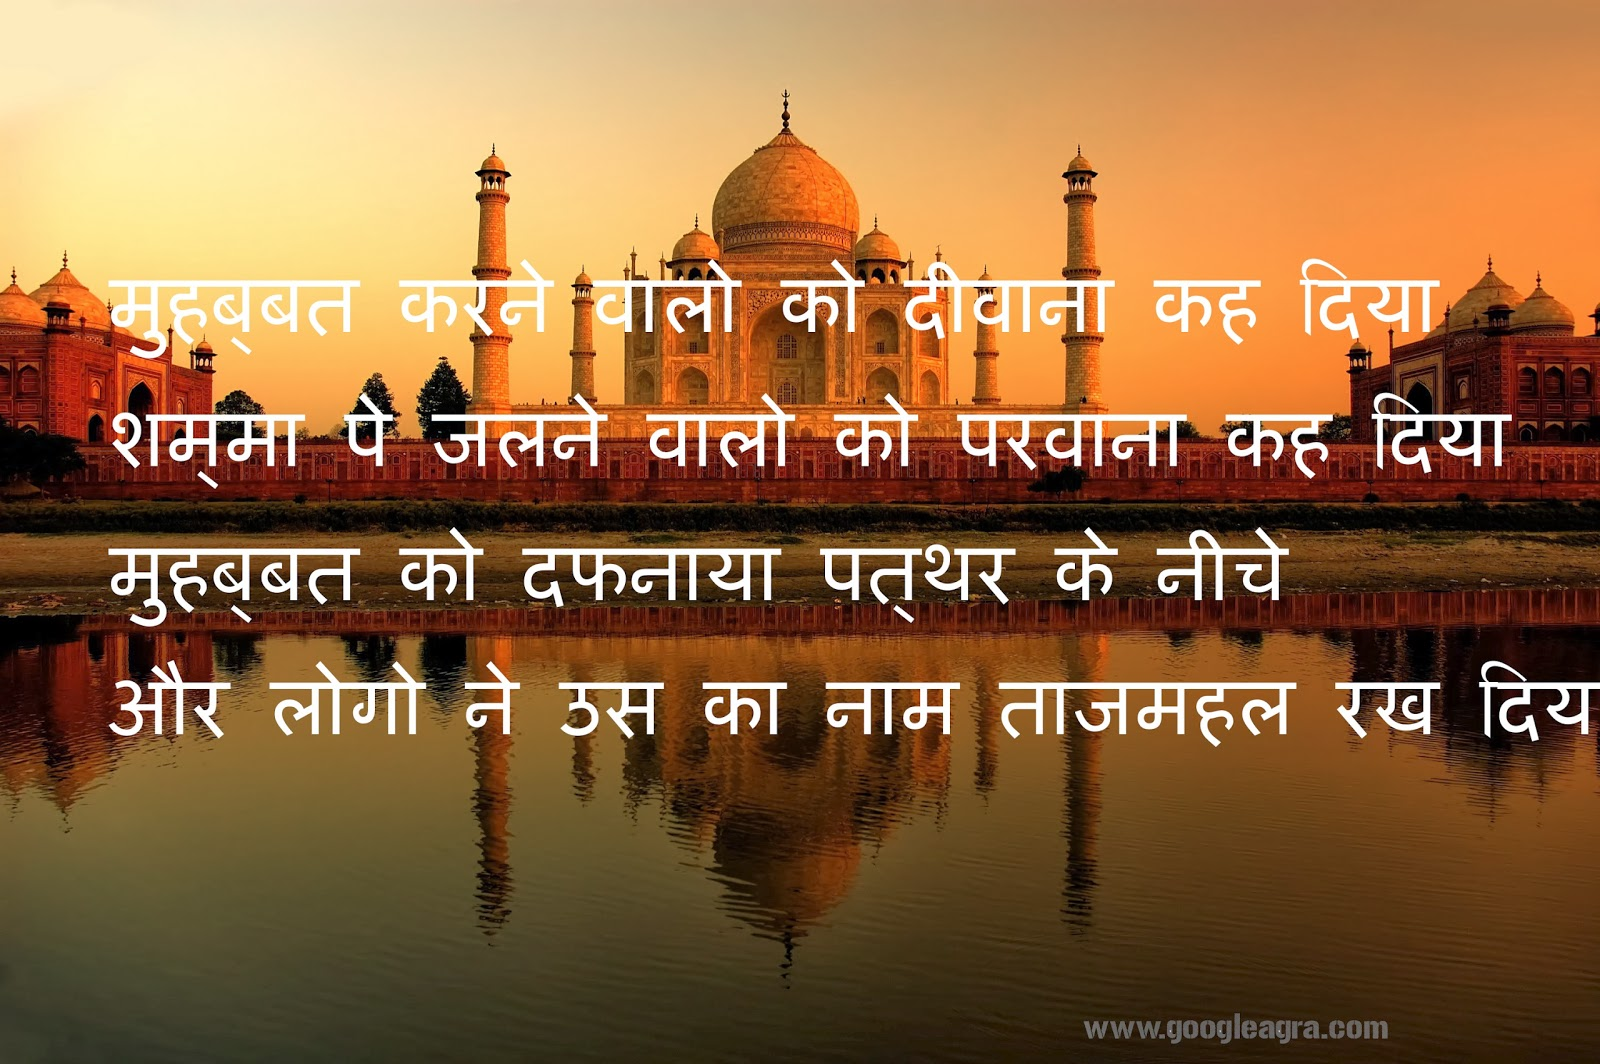 tajmahal shayari in hindi google agra hindi shayari shayari day